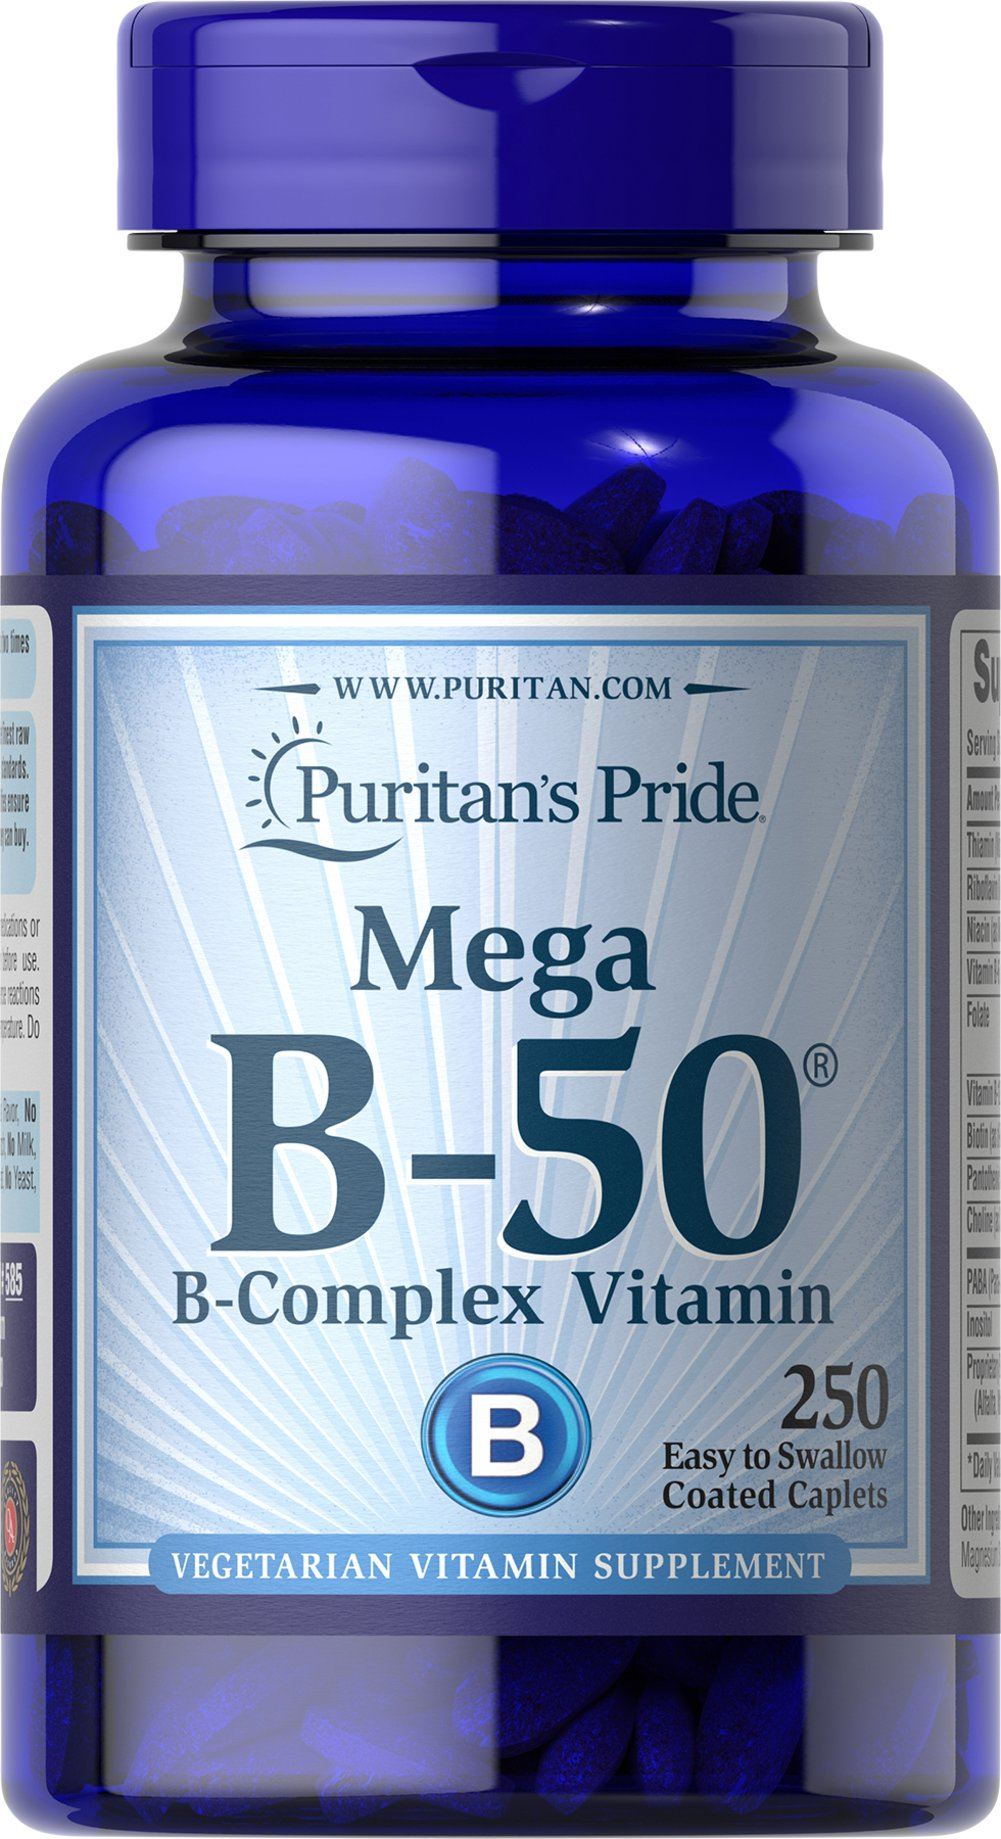 Vitamin B-50® Complex <p>The Vitamin B-50® Complex is made up of several vitamins that work well together to support nervous system health.** B Complex vitamins also promote energy metabolism.** Each nutrient in the Vitamin B Complex performs a unique role in maintaining proper metabolic functioning and is essential for well being.**</p> 250 Tablets 50 mg $27.98